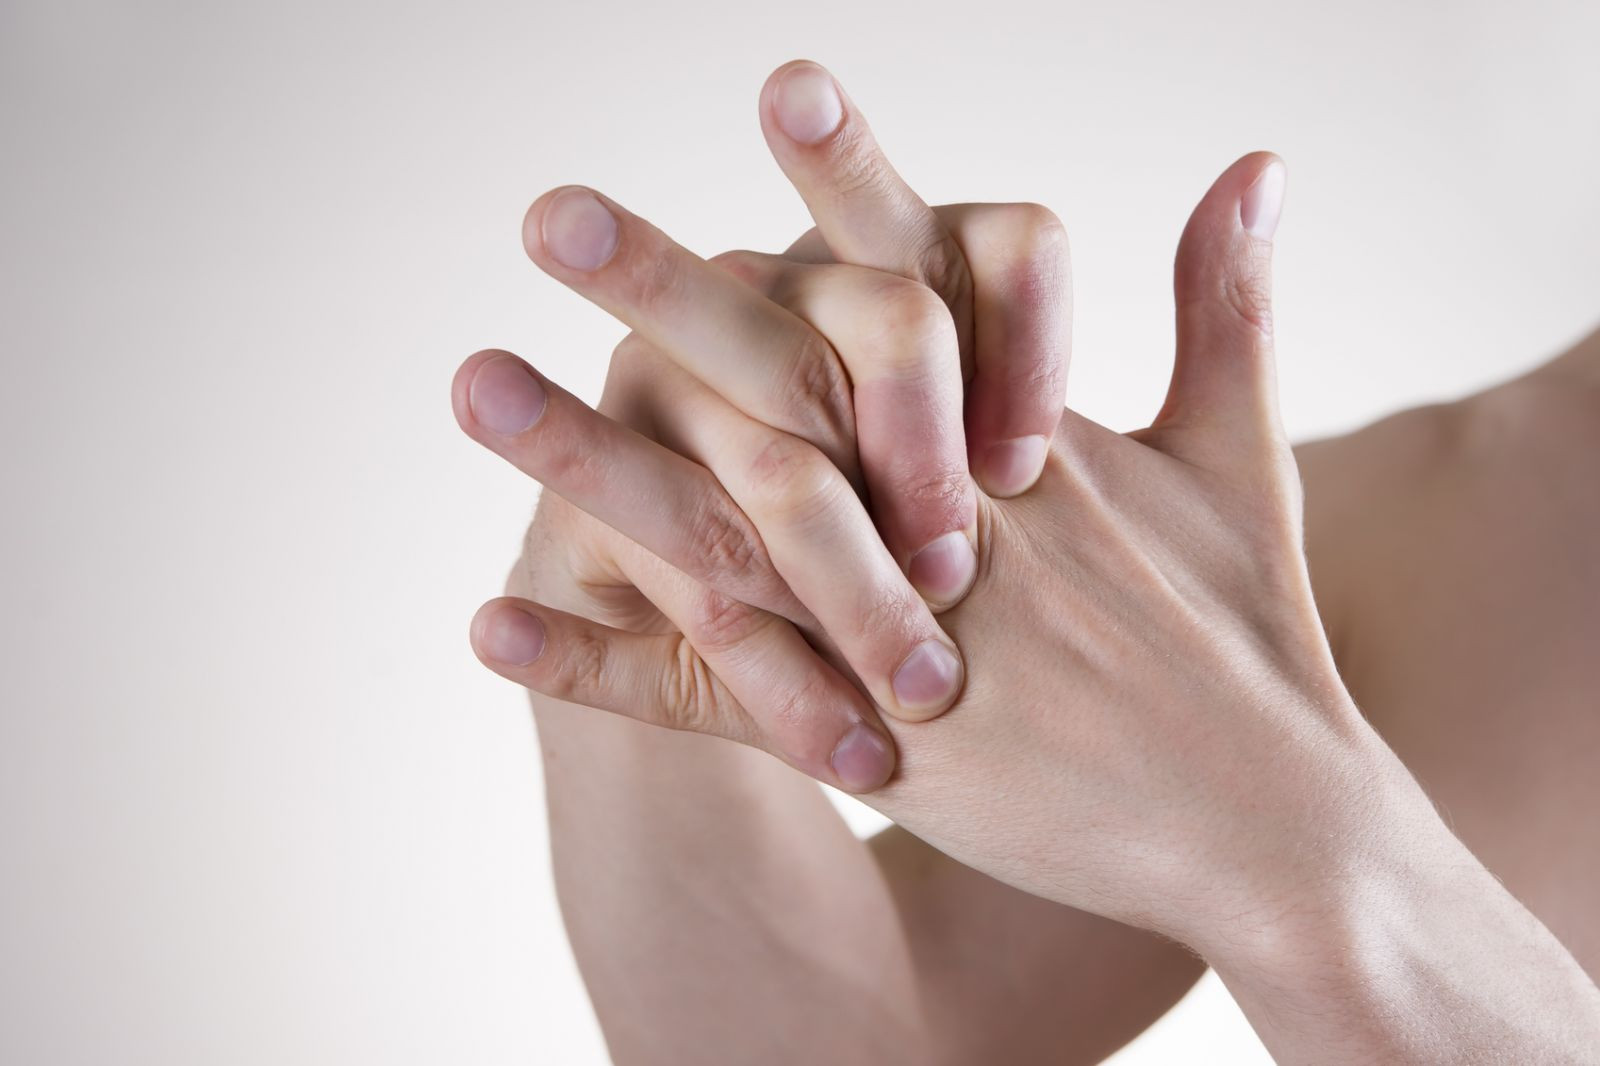 5 exercises to improve hand mobility